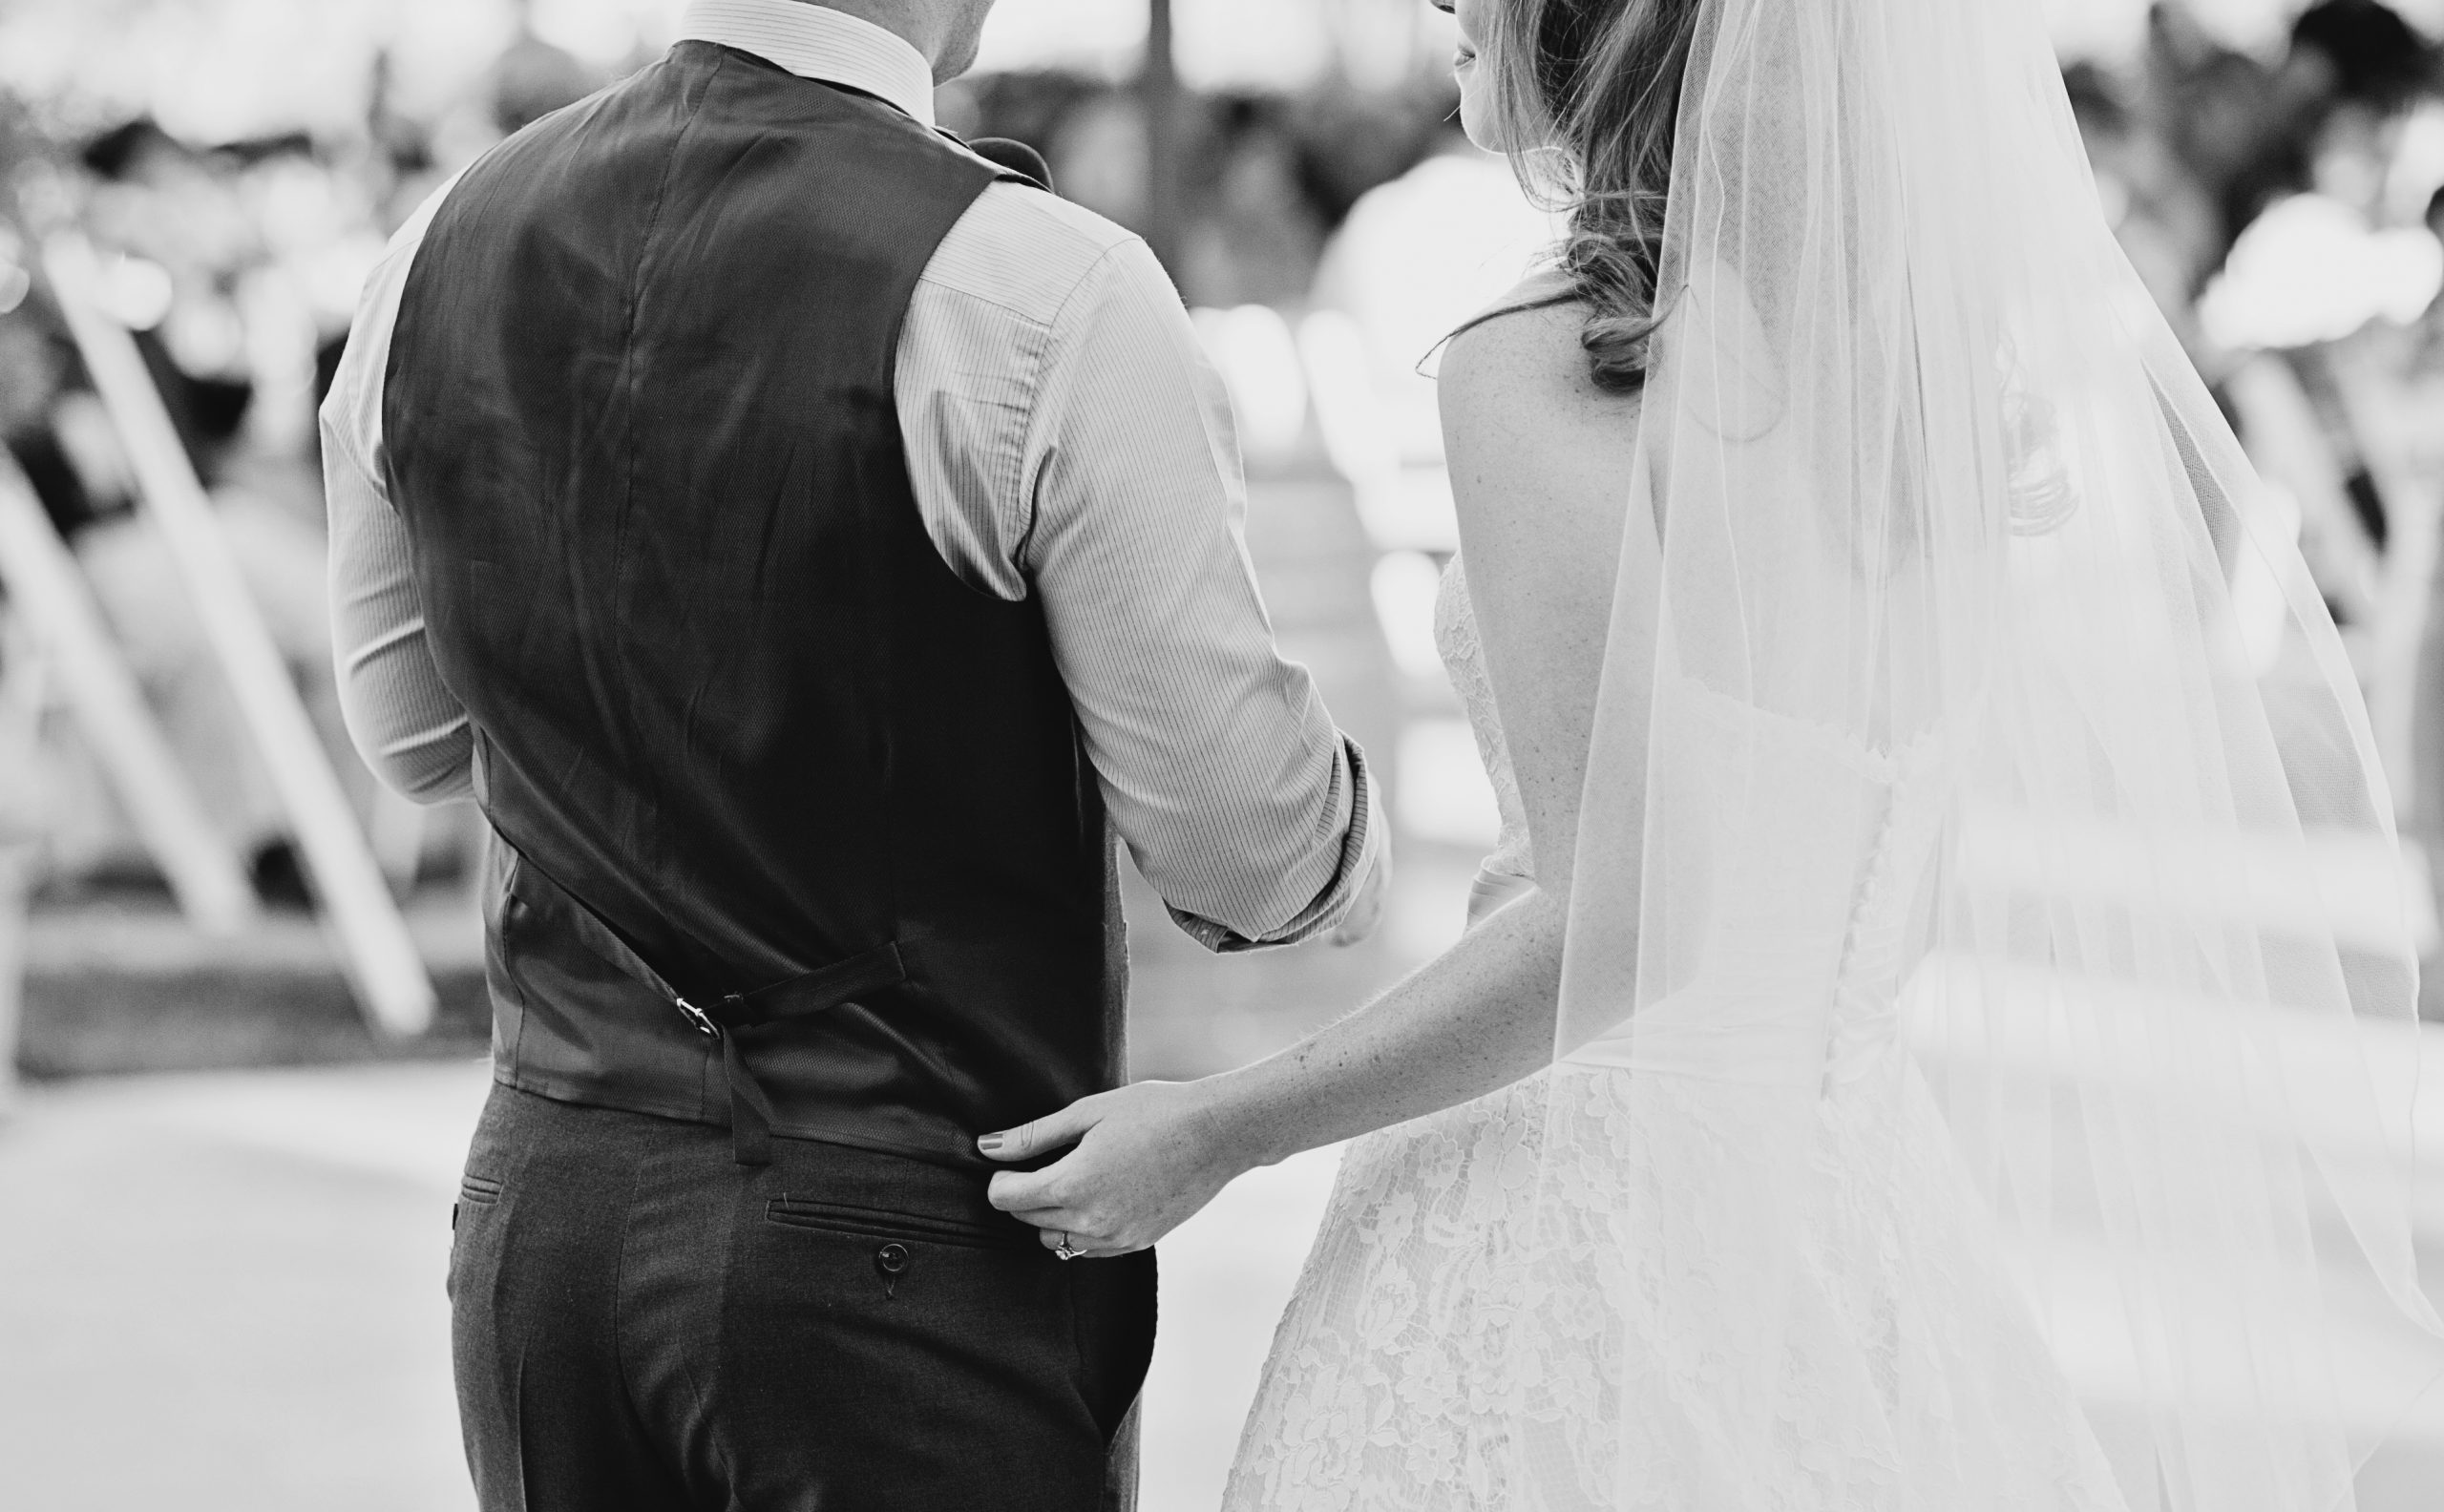 Traditional bride and groom - Black and white